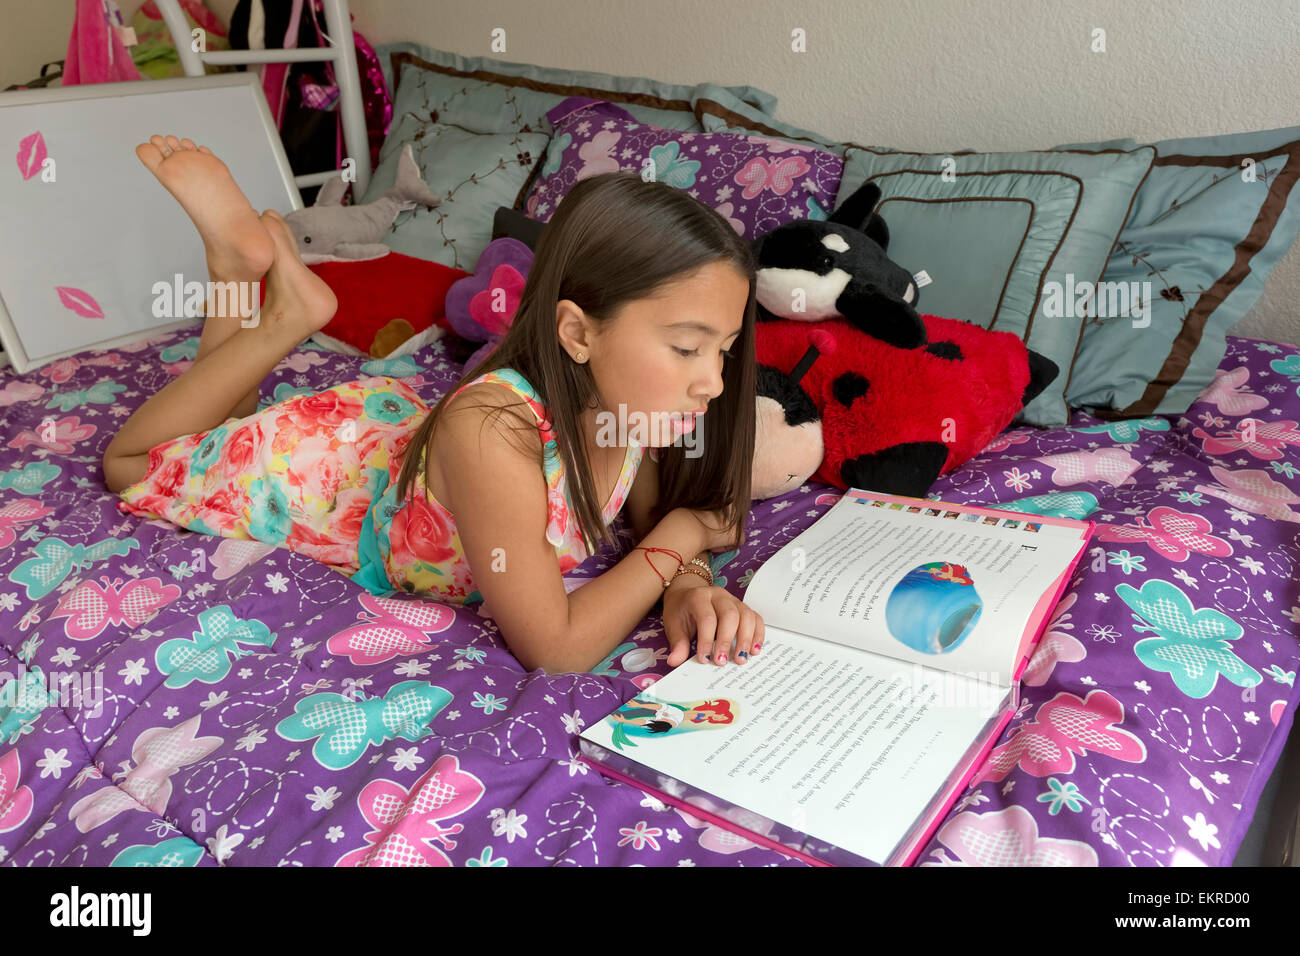 8 year old girl reading a story on her bed at home stock photo royalty free image 81035024 alamy. Black Bedroom Furniture Sets. Home Design Ideas